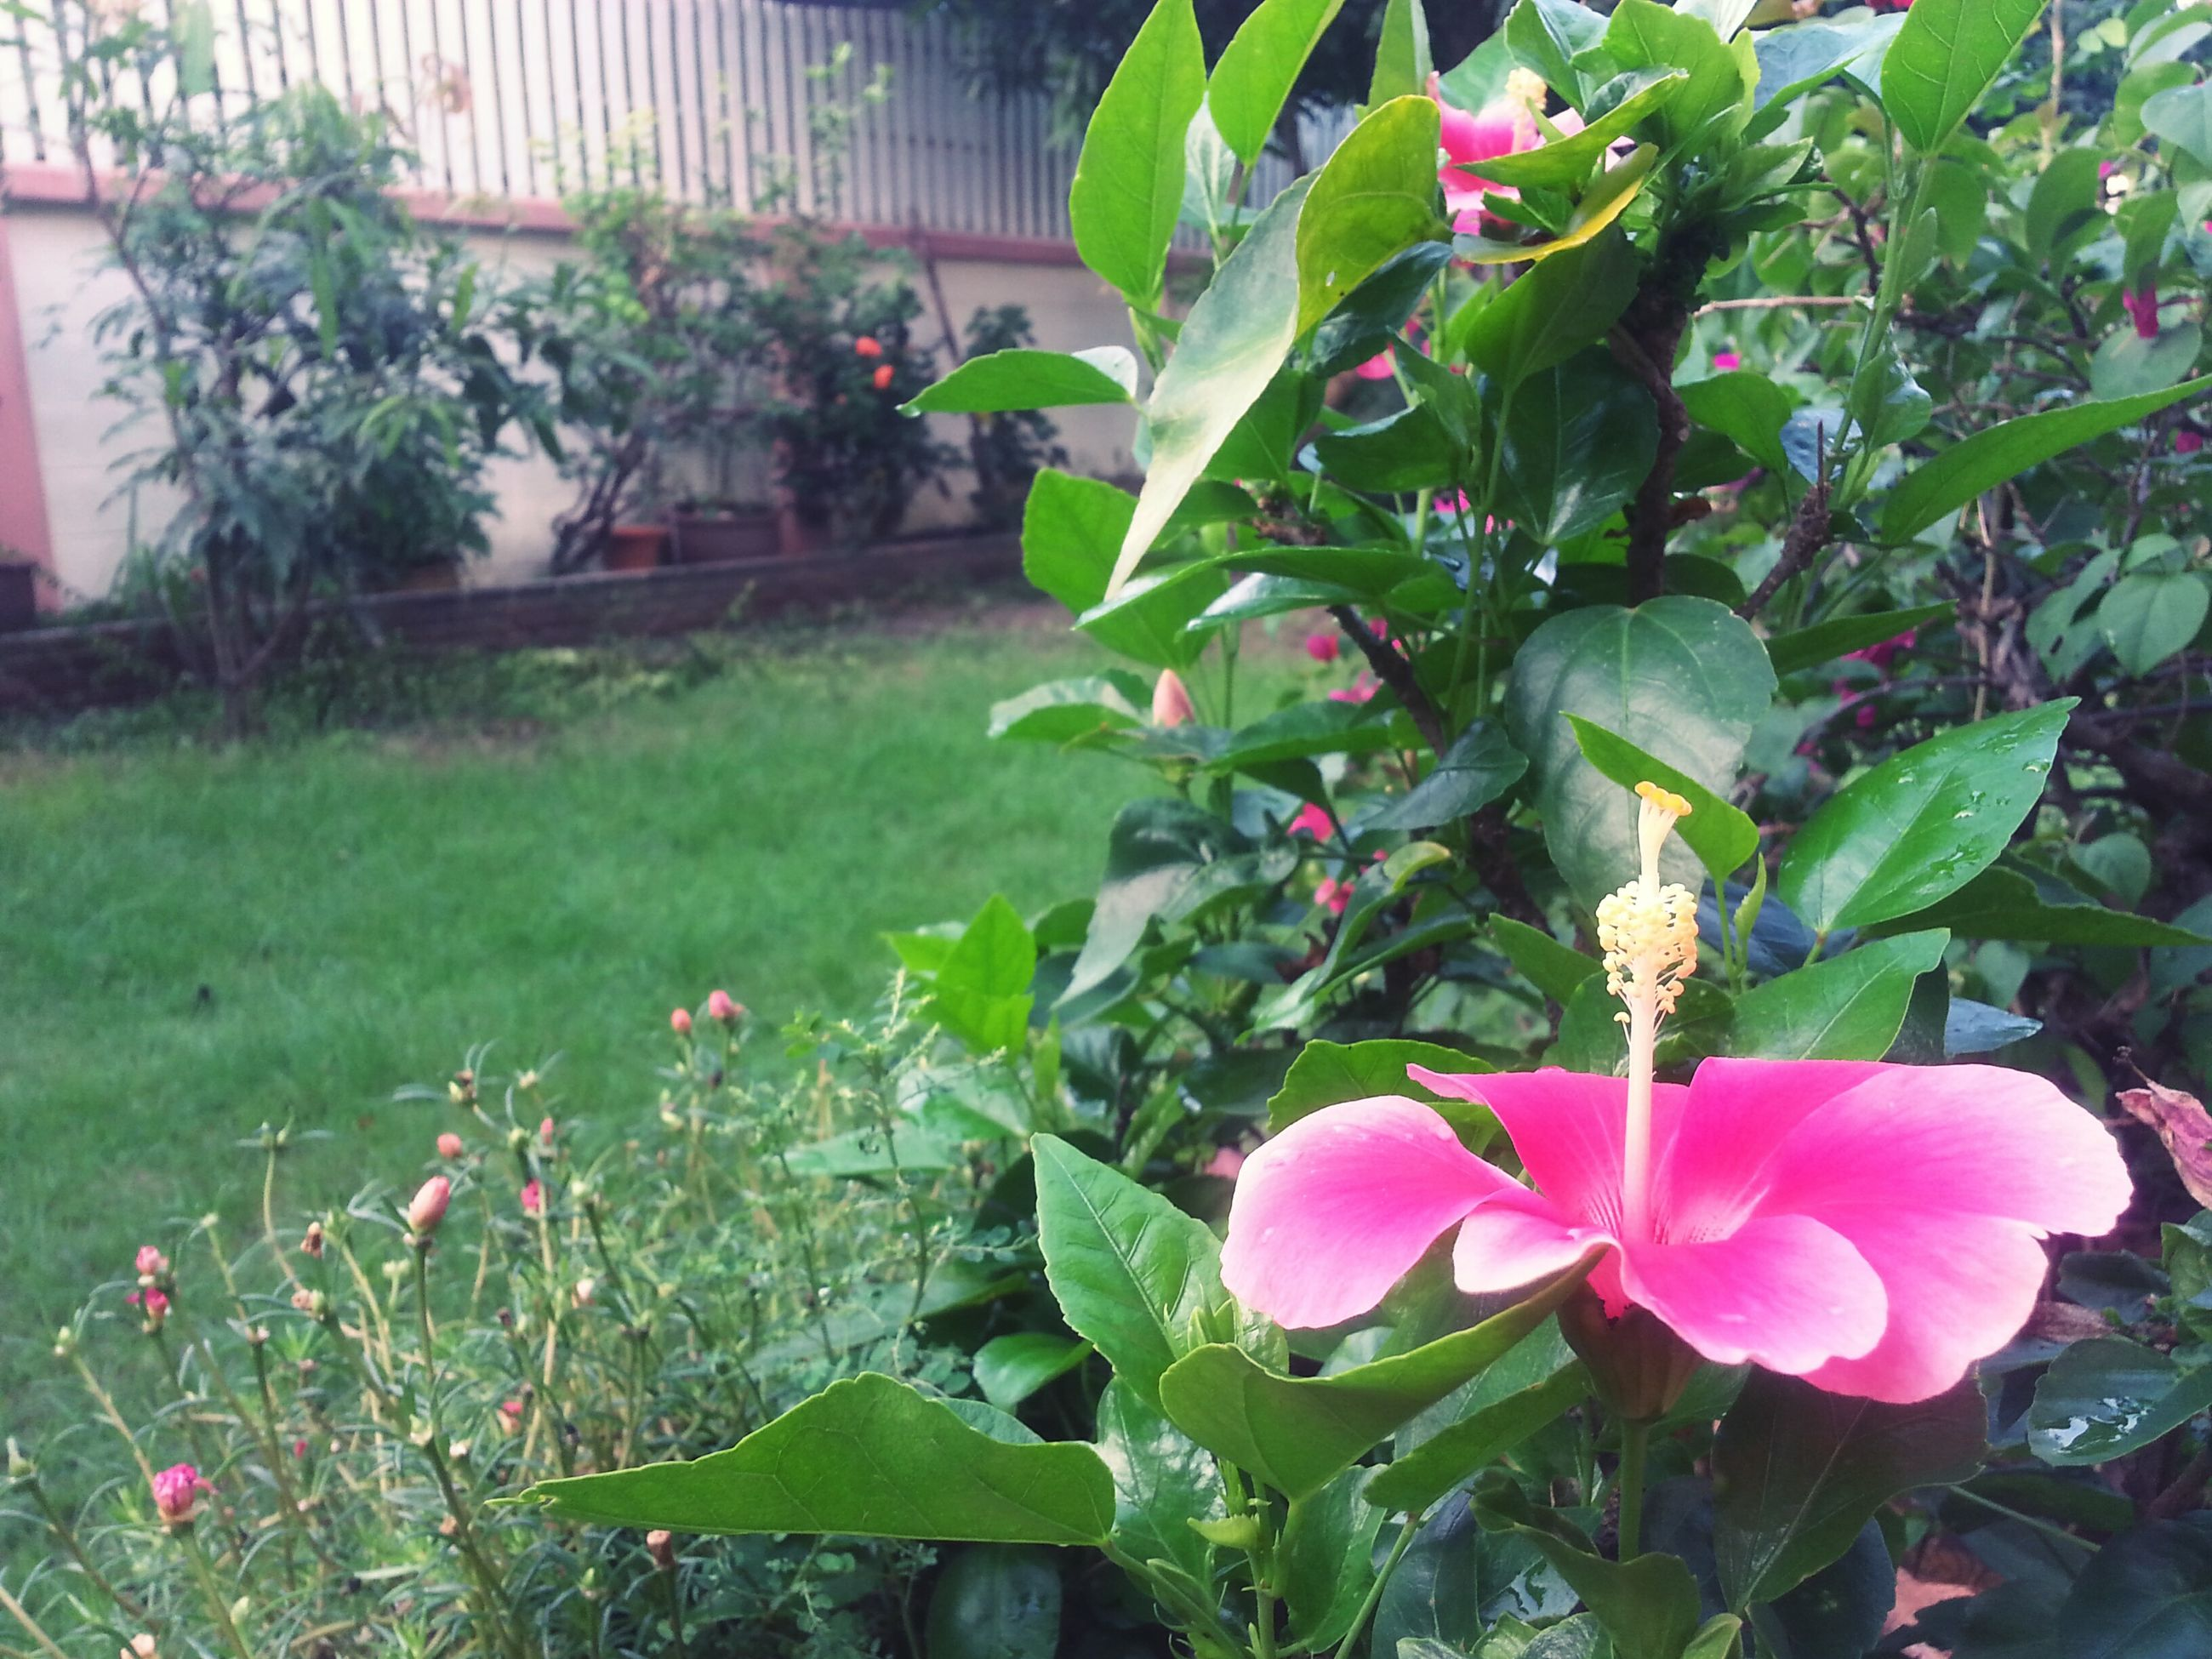 flower, freshness, growth, fragility, plant, petal, leaf, beauty in nature, pink color, blooming, nature, green color, flower head, in bloom, blossom, day, park - man made space, close-up, outdoors, front or back yard